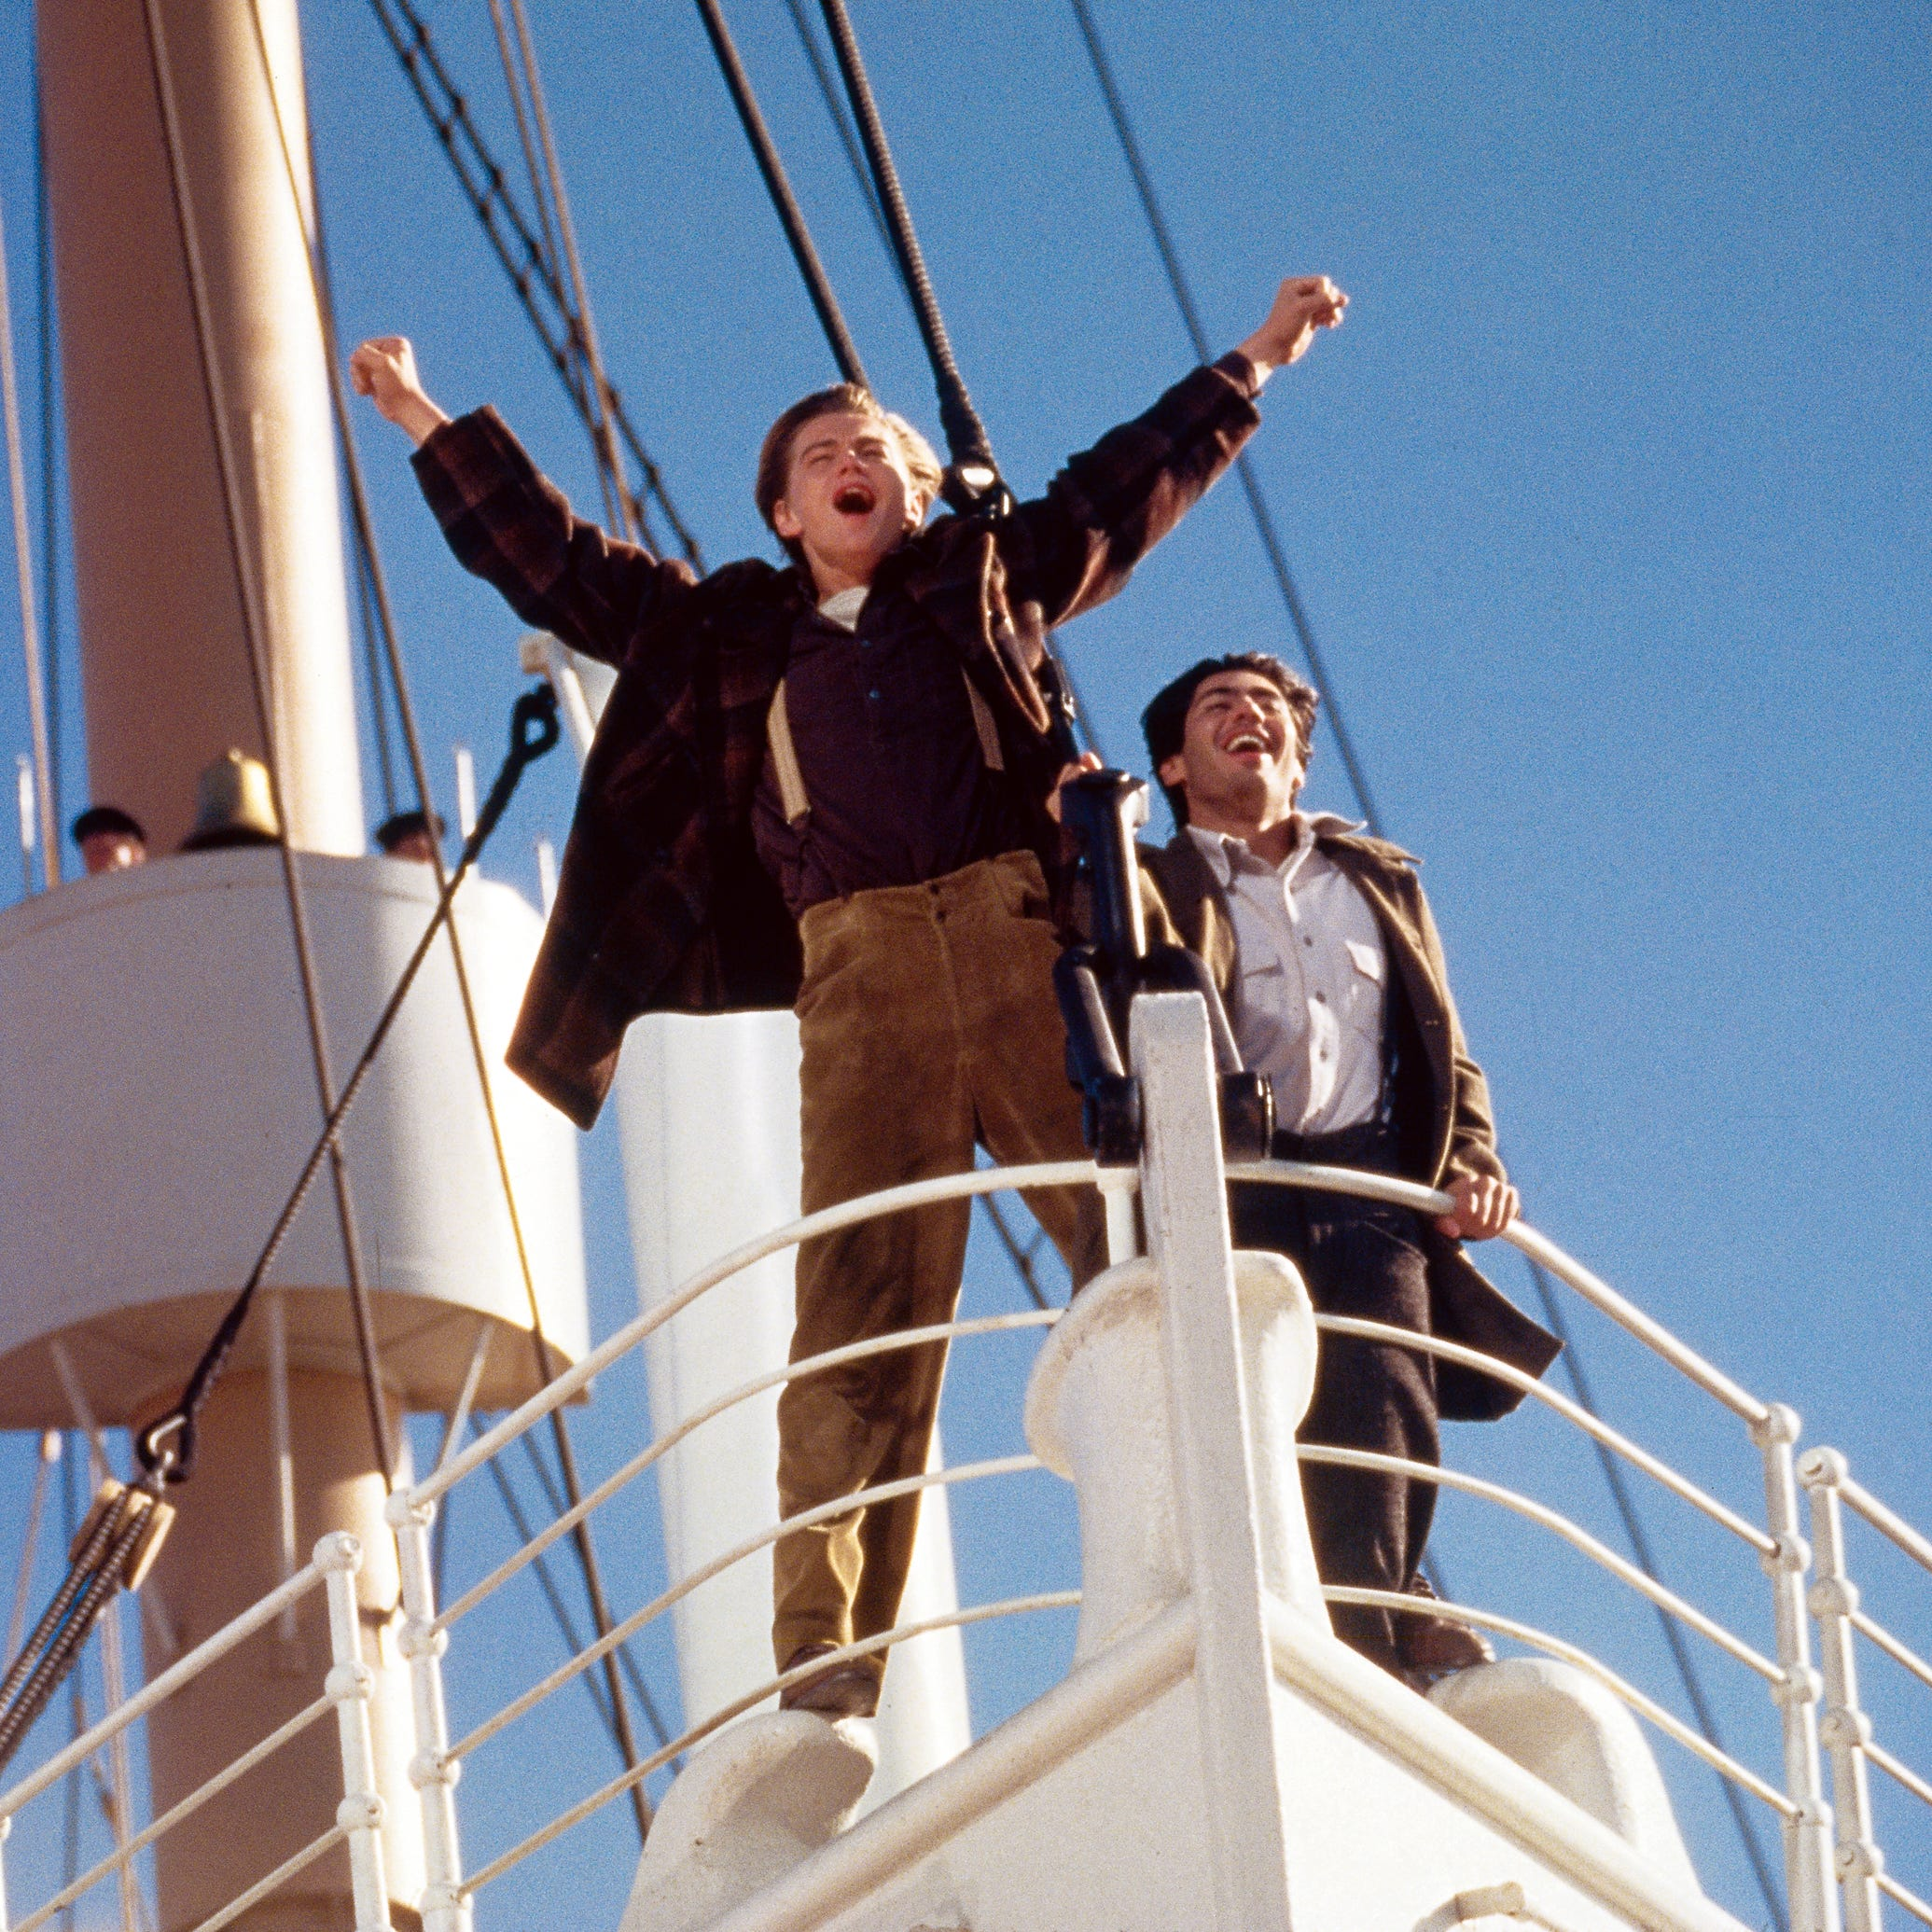 Jack (Leonardo DiCaprio) and friend Fabrizio (Danny Nucci) experience the Titanic for the first time in the famous 1997 film.